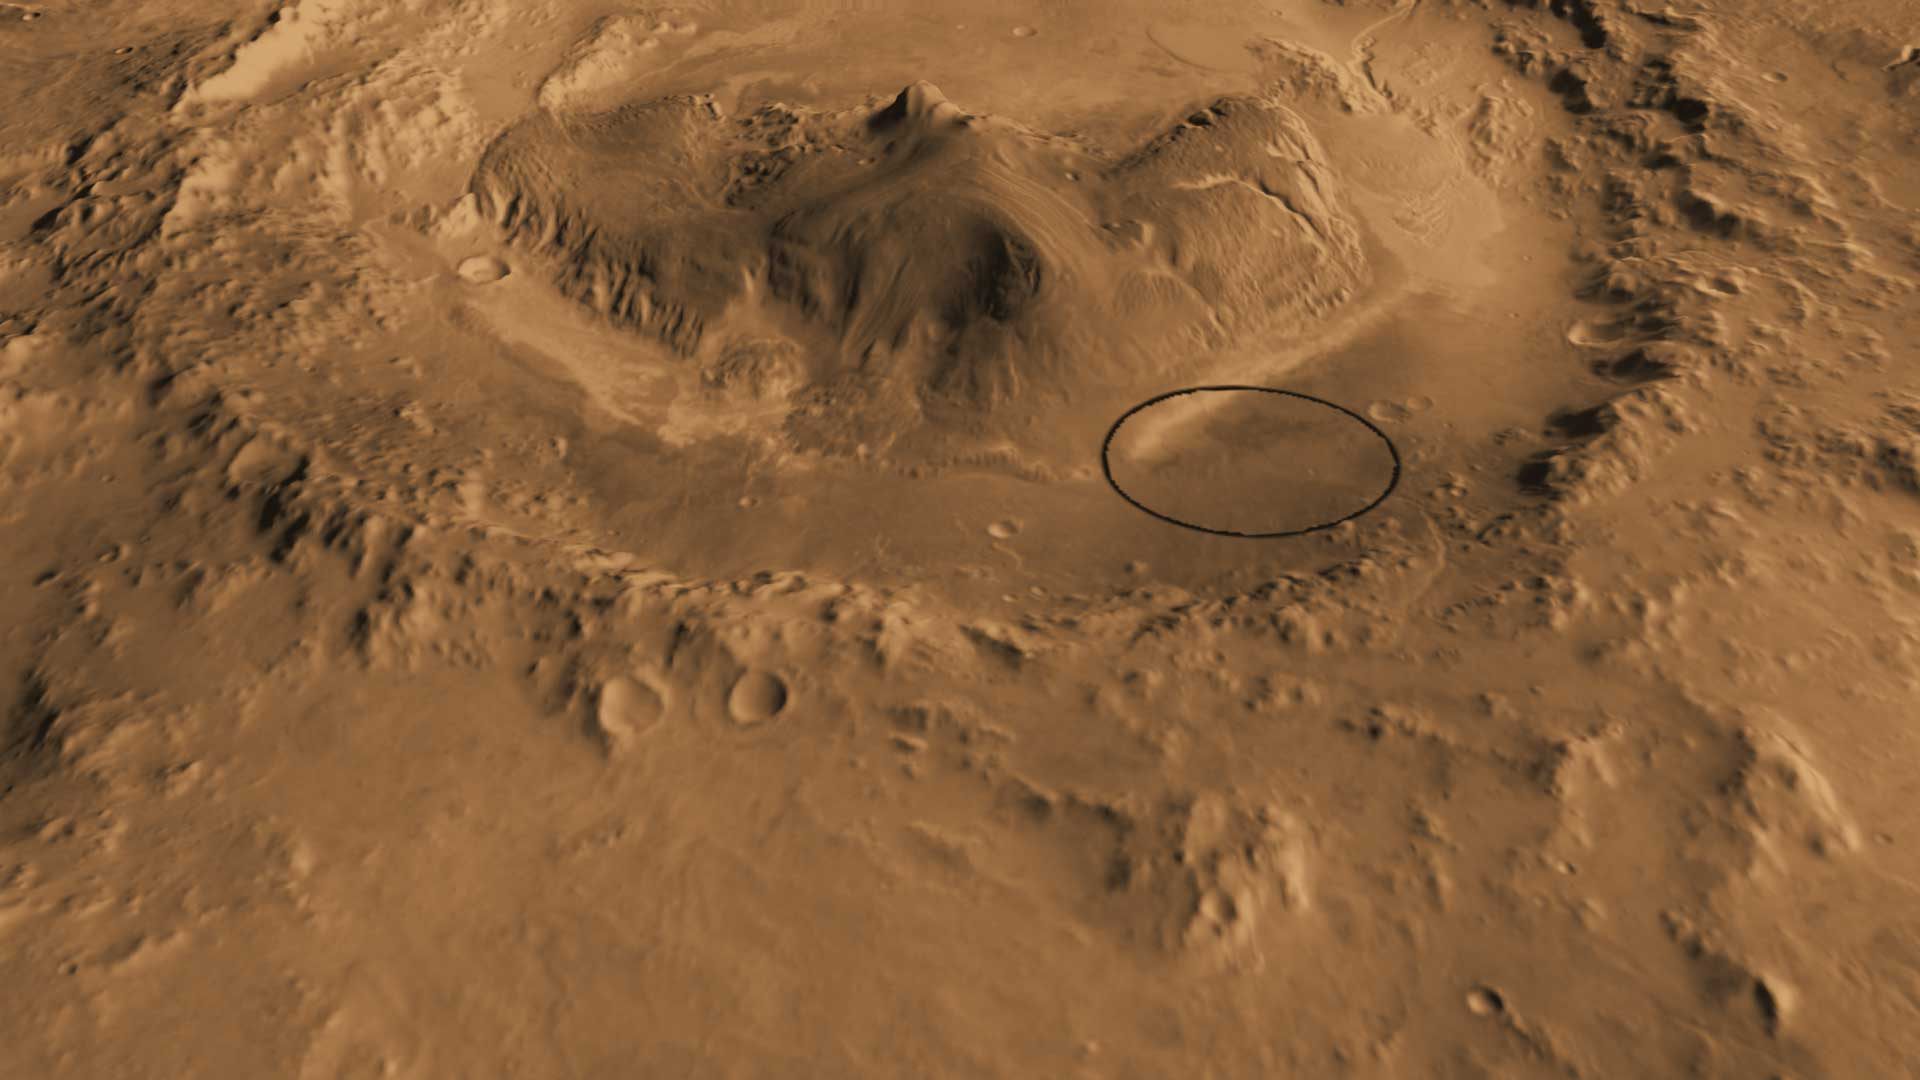 This computer-generated view based on multiple orbital observations shows Mars' Gale crater as if seen from an aircraft north of the crater.